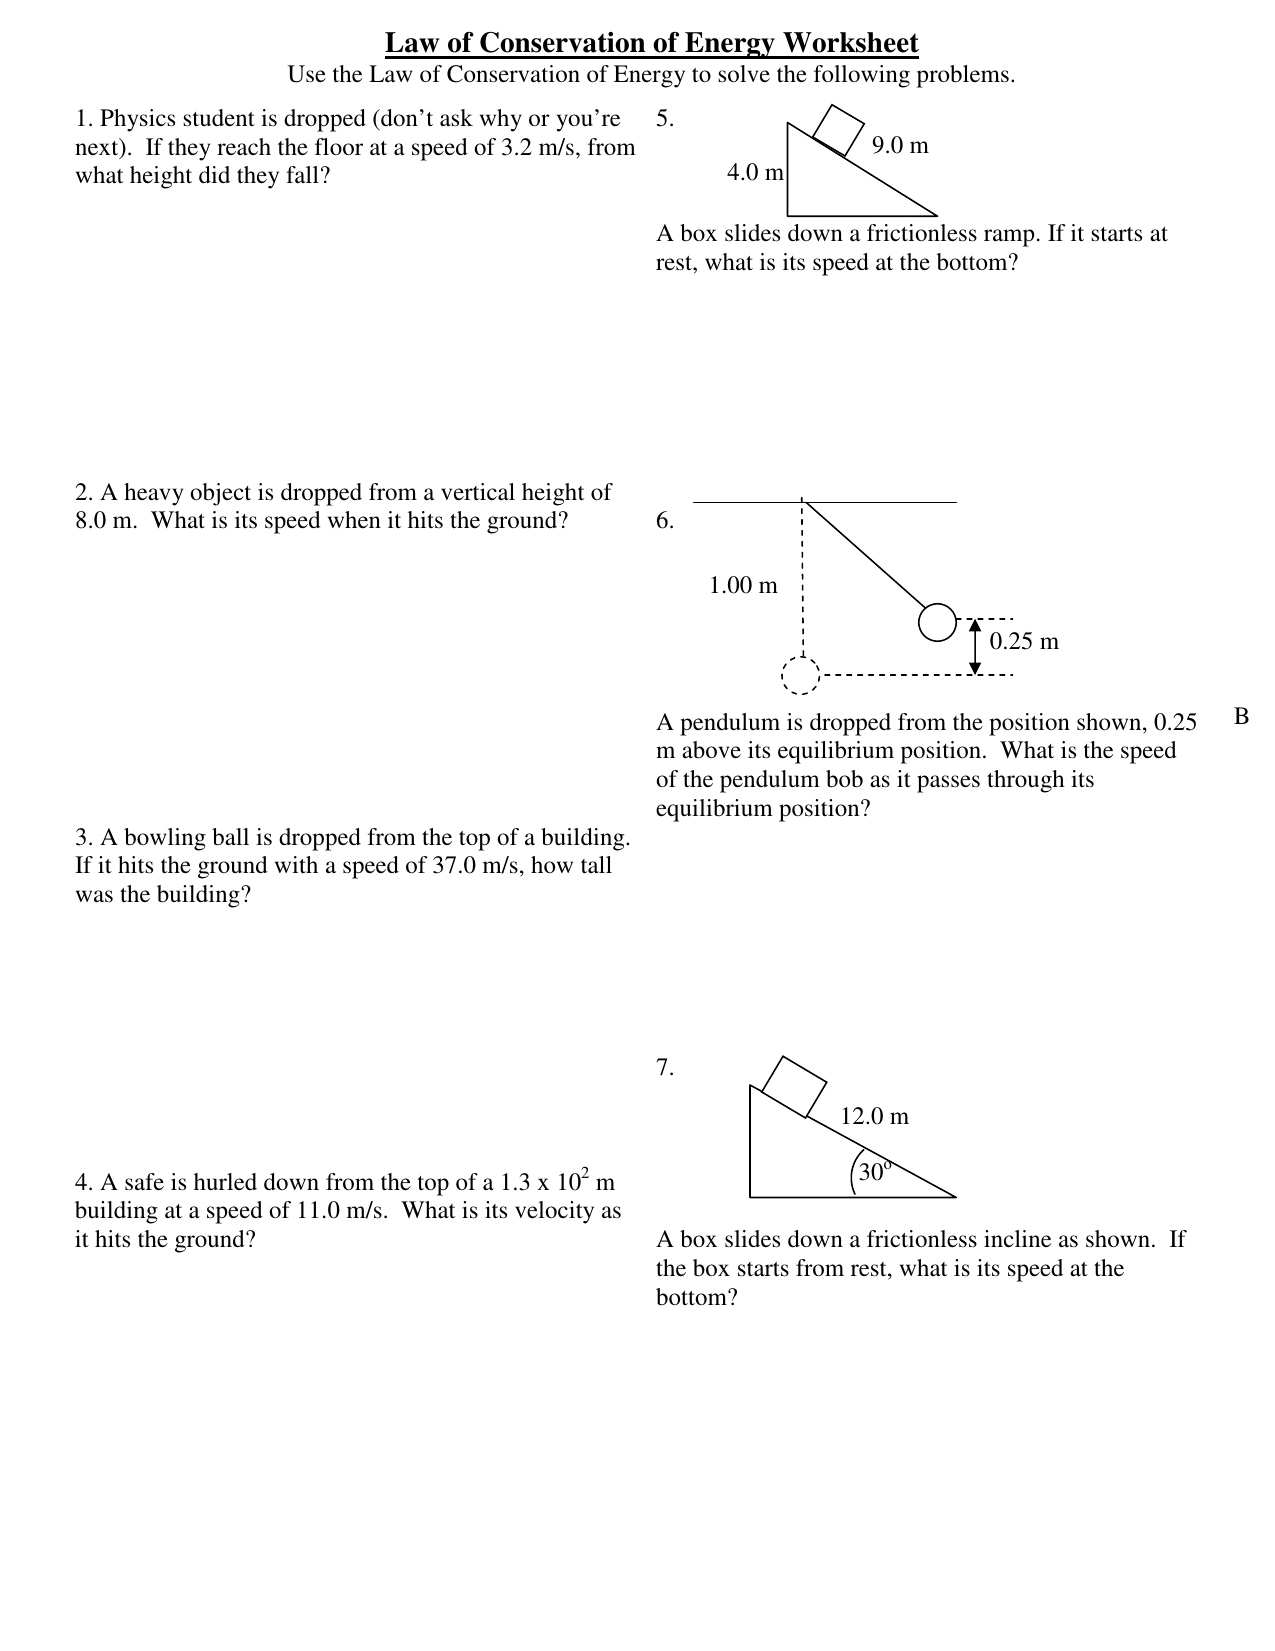 Worksheet 4 Law Of Conservation Of Energy